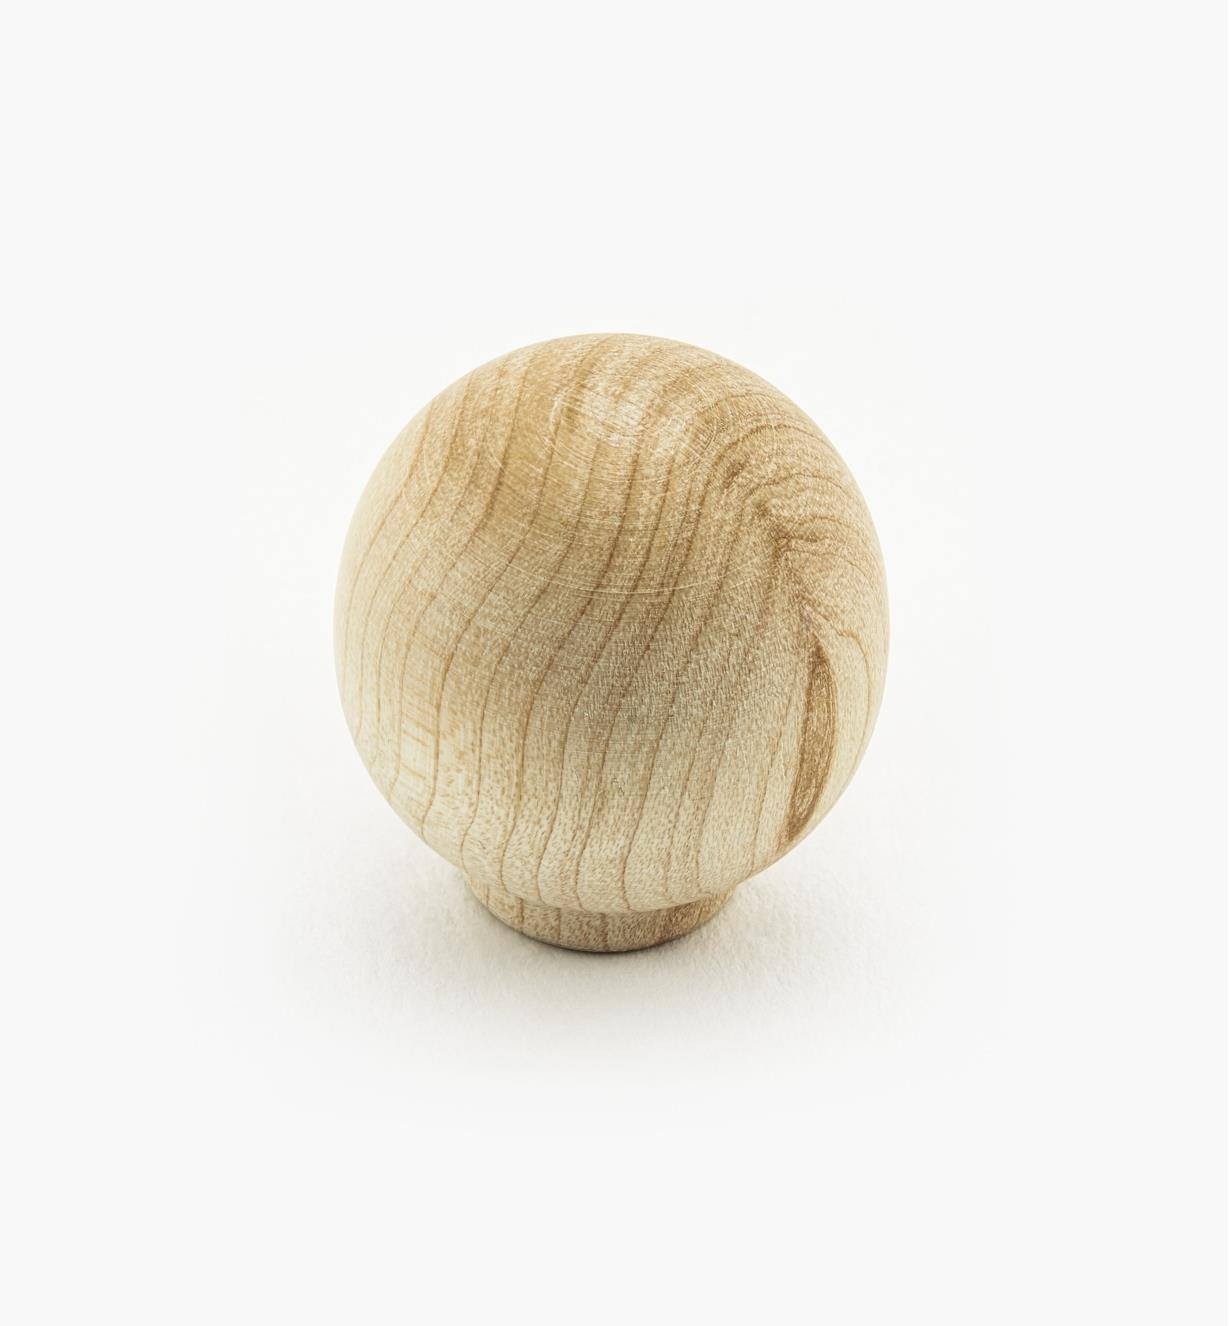 "02G1416 - 15/16"" x 1"" Maple Ball Knob"